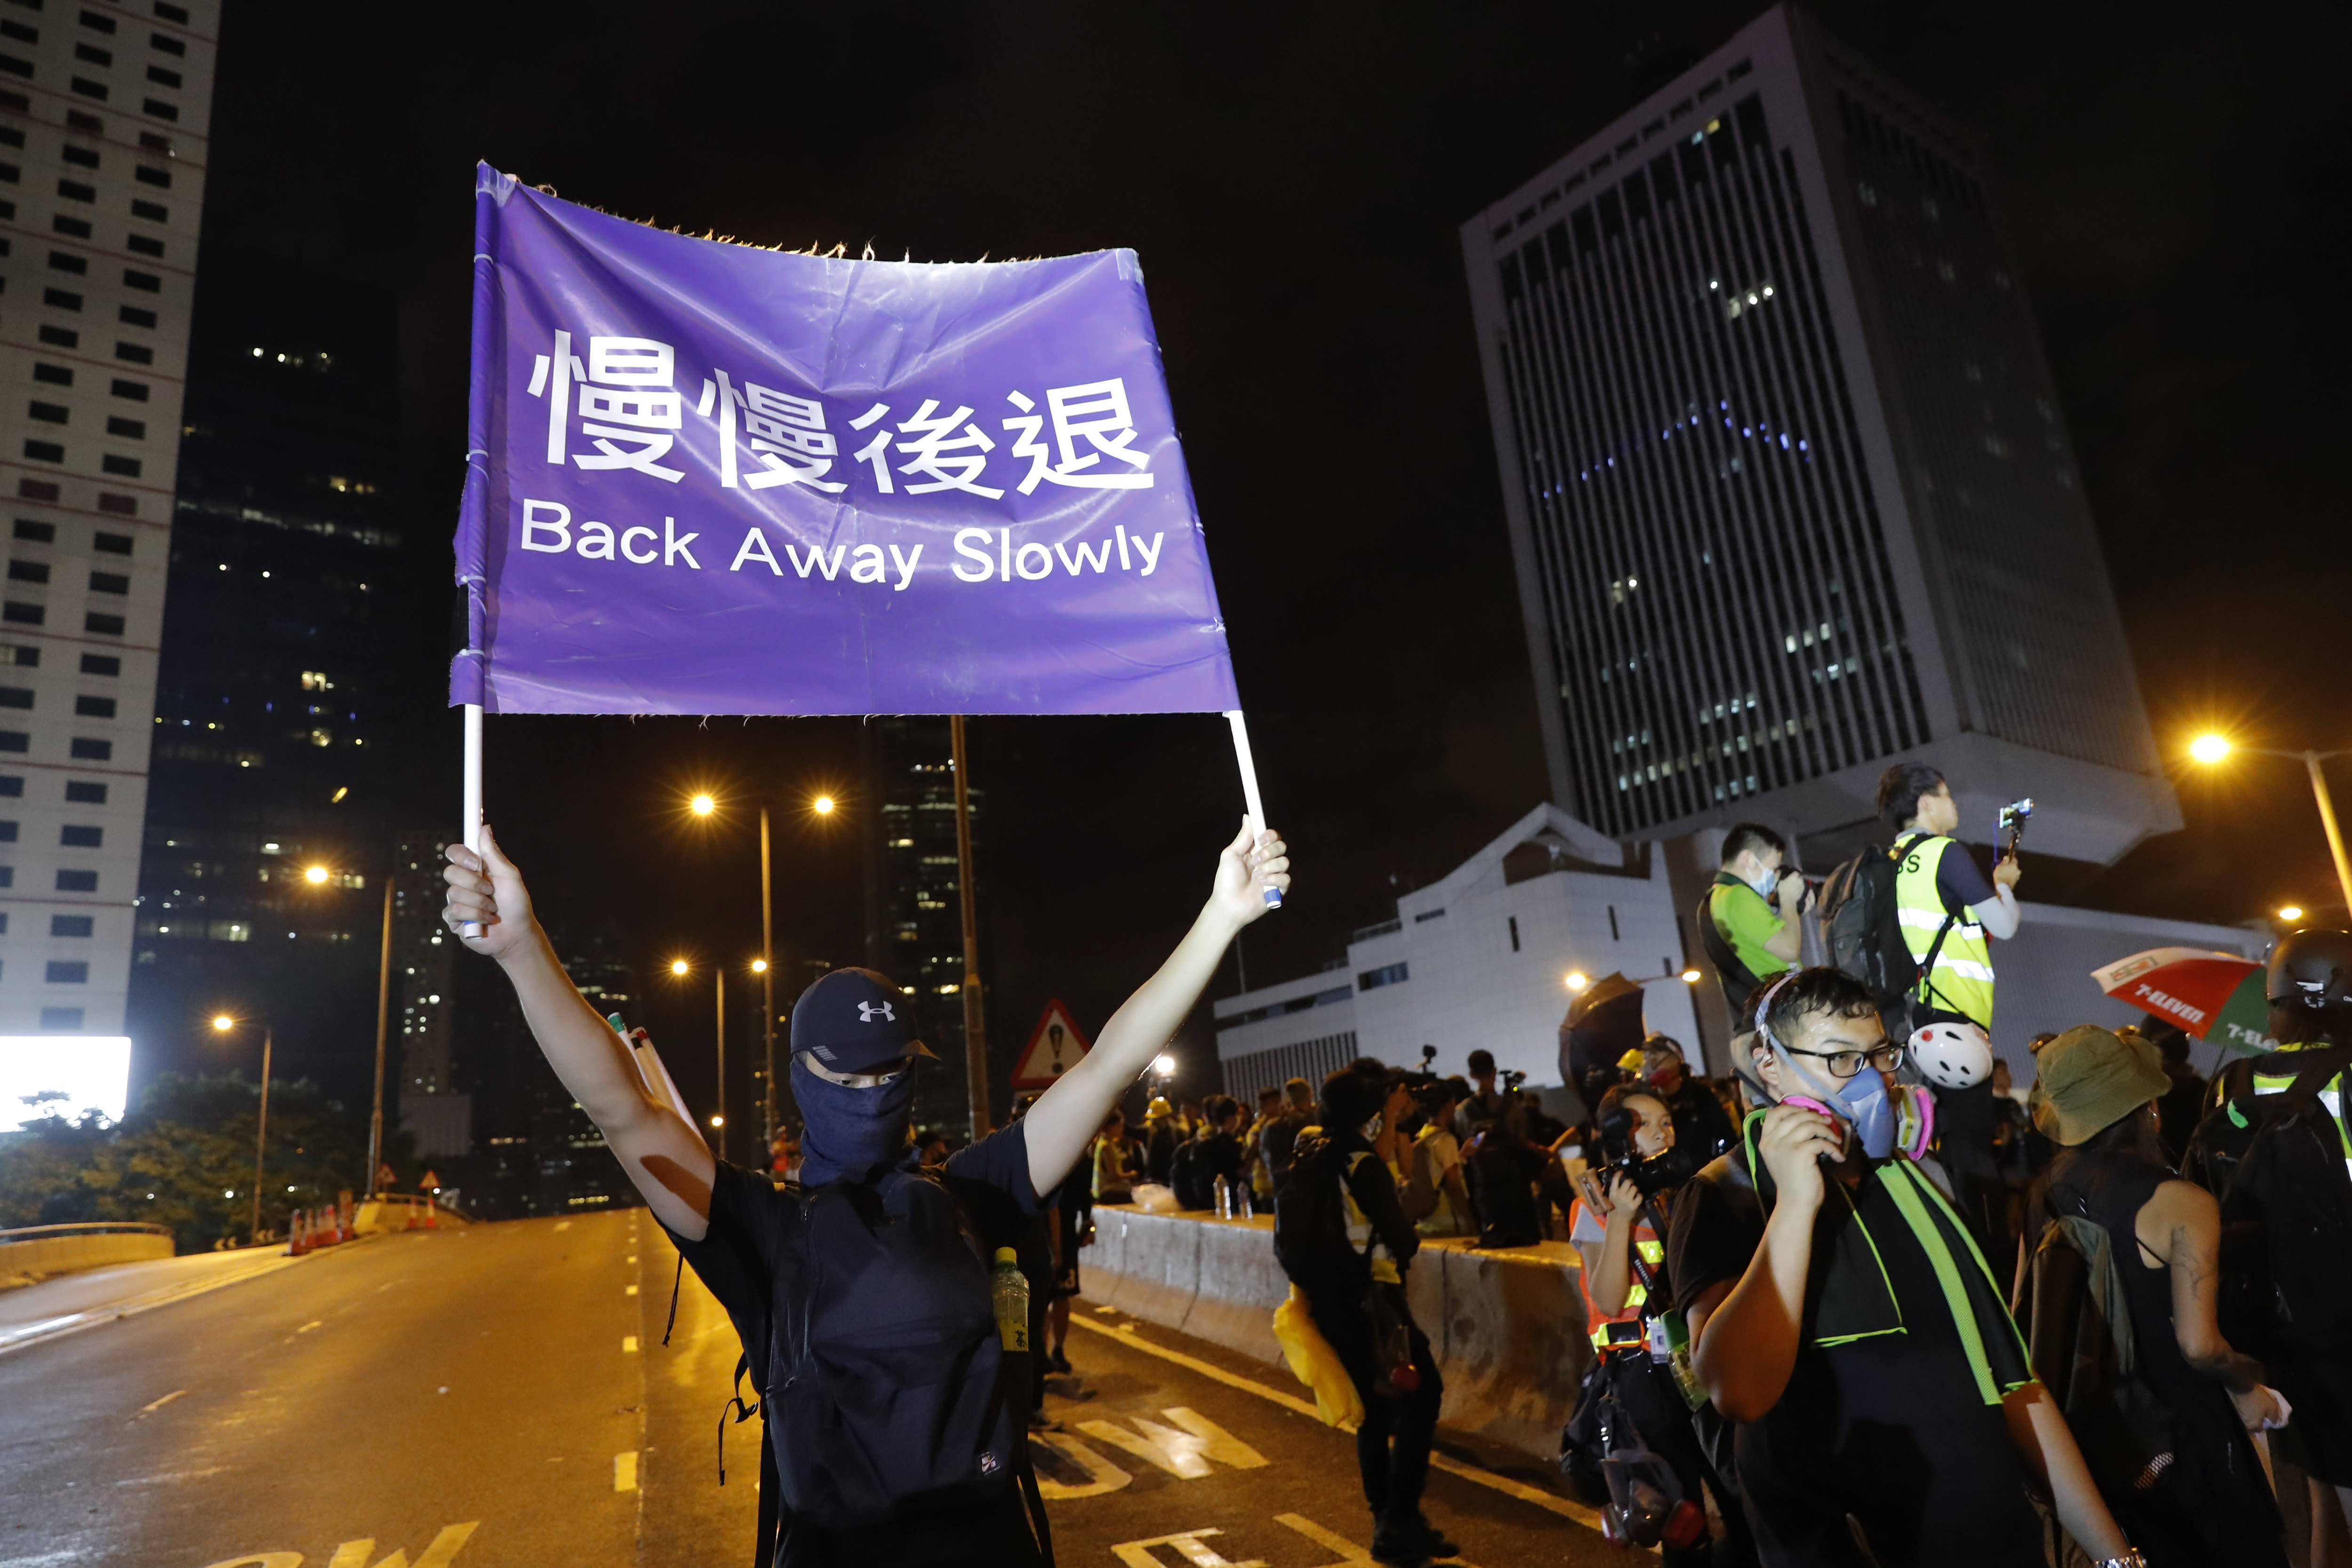 """A demonstrator holds up a sign reading """"Back away slowly"""" to encourage other demonstrators to leave, near the Chinese Liaison Office in Hong Kong, Sunday, Aug. 18, 2019. Protesters turned Hong Kong streets into rivers of umbrellas Sunday as they marched through heavy rain from a packed park and filled a major road in the Chinese territory, where mass pro-democracy demonstrations have become a regular weekend activity this summer. (AP Photo/Vincent Thian)"""